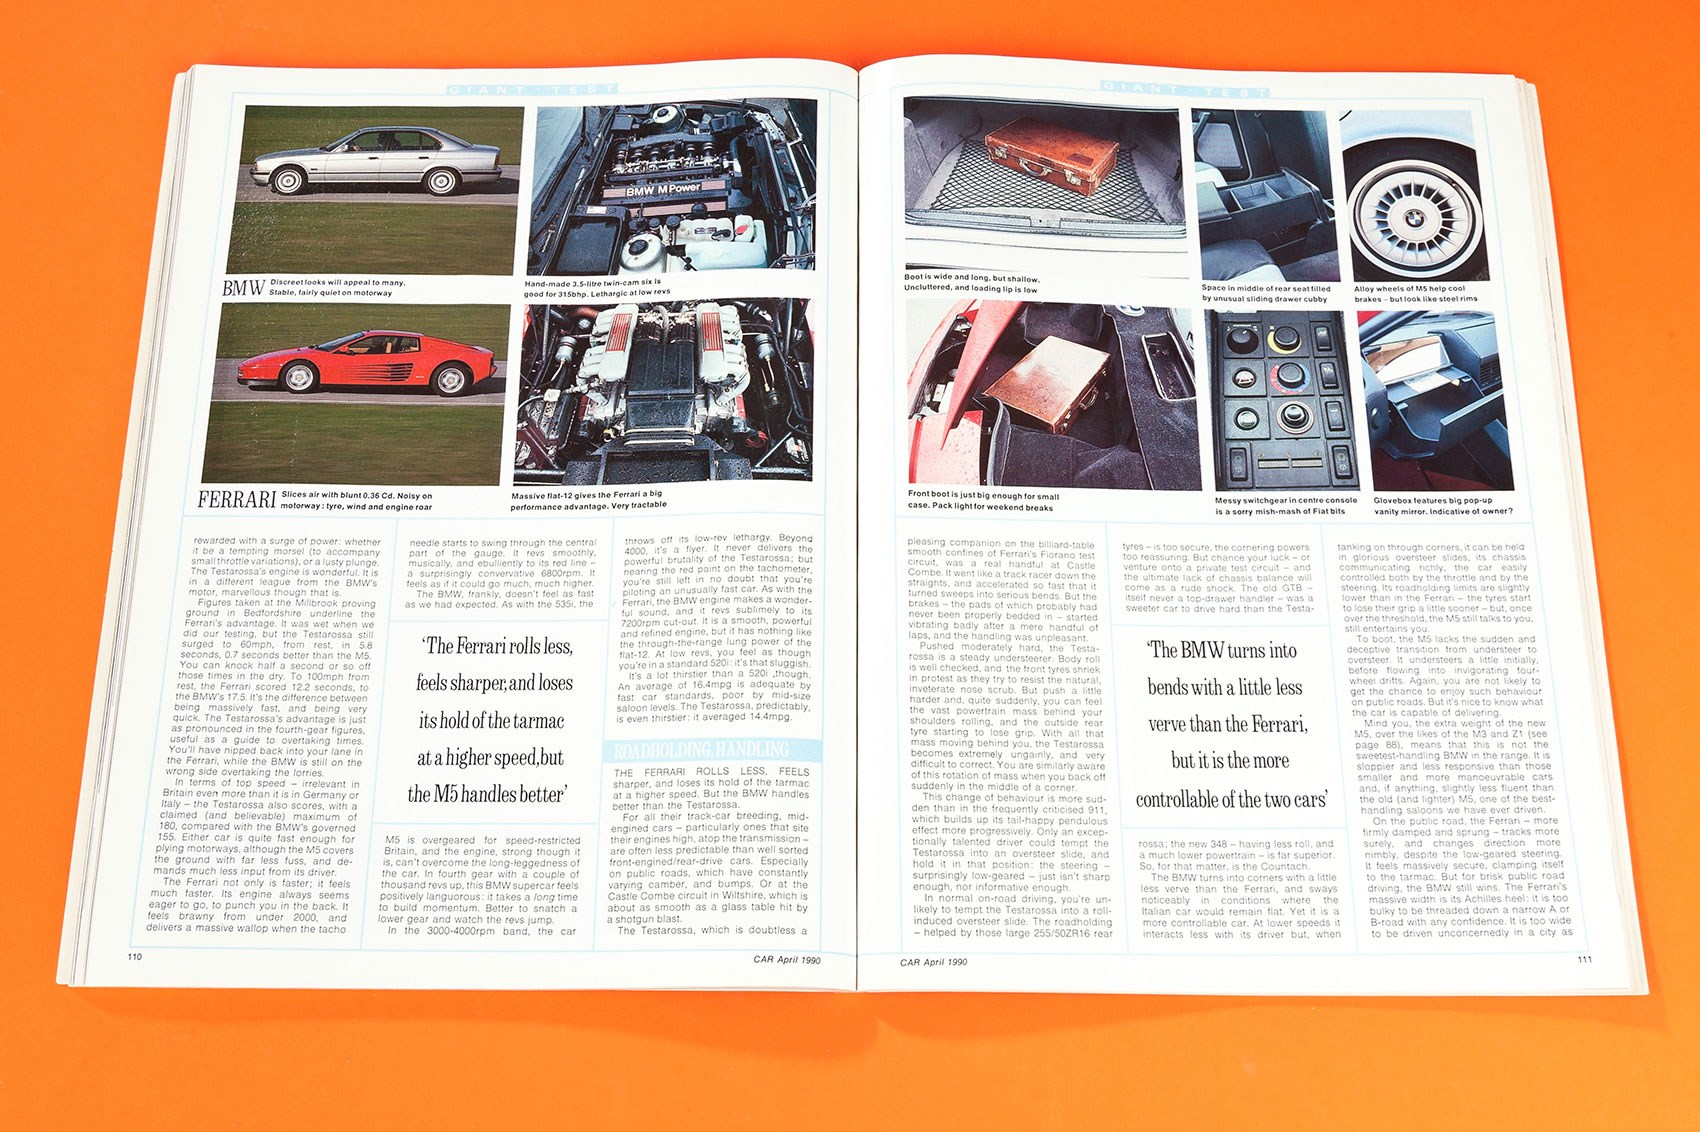 Bmw E34 M5 Vs Ferrari Testarossa Car Archive 1990 Magazine Bentley Continental Gt Fuse Diagram April